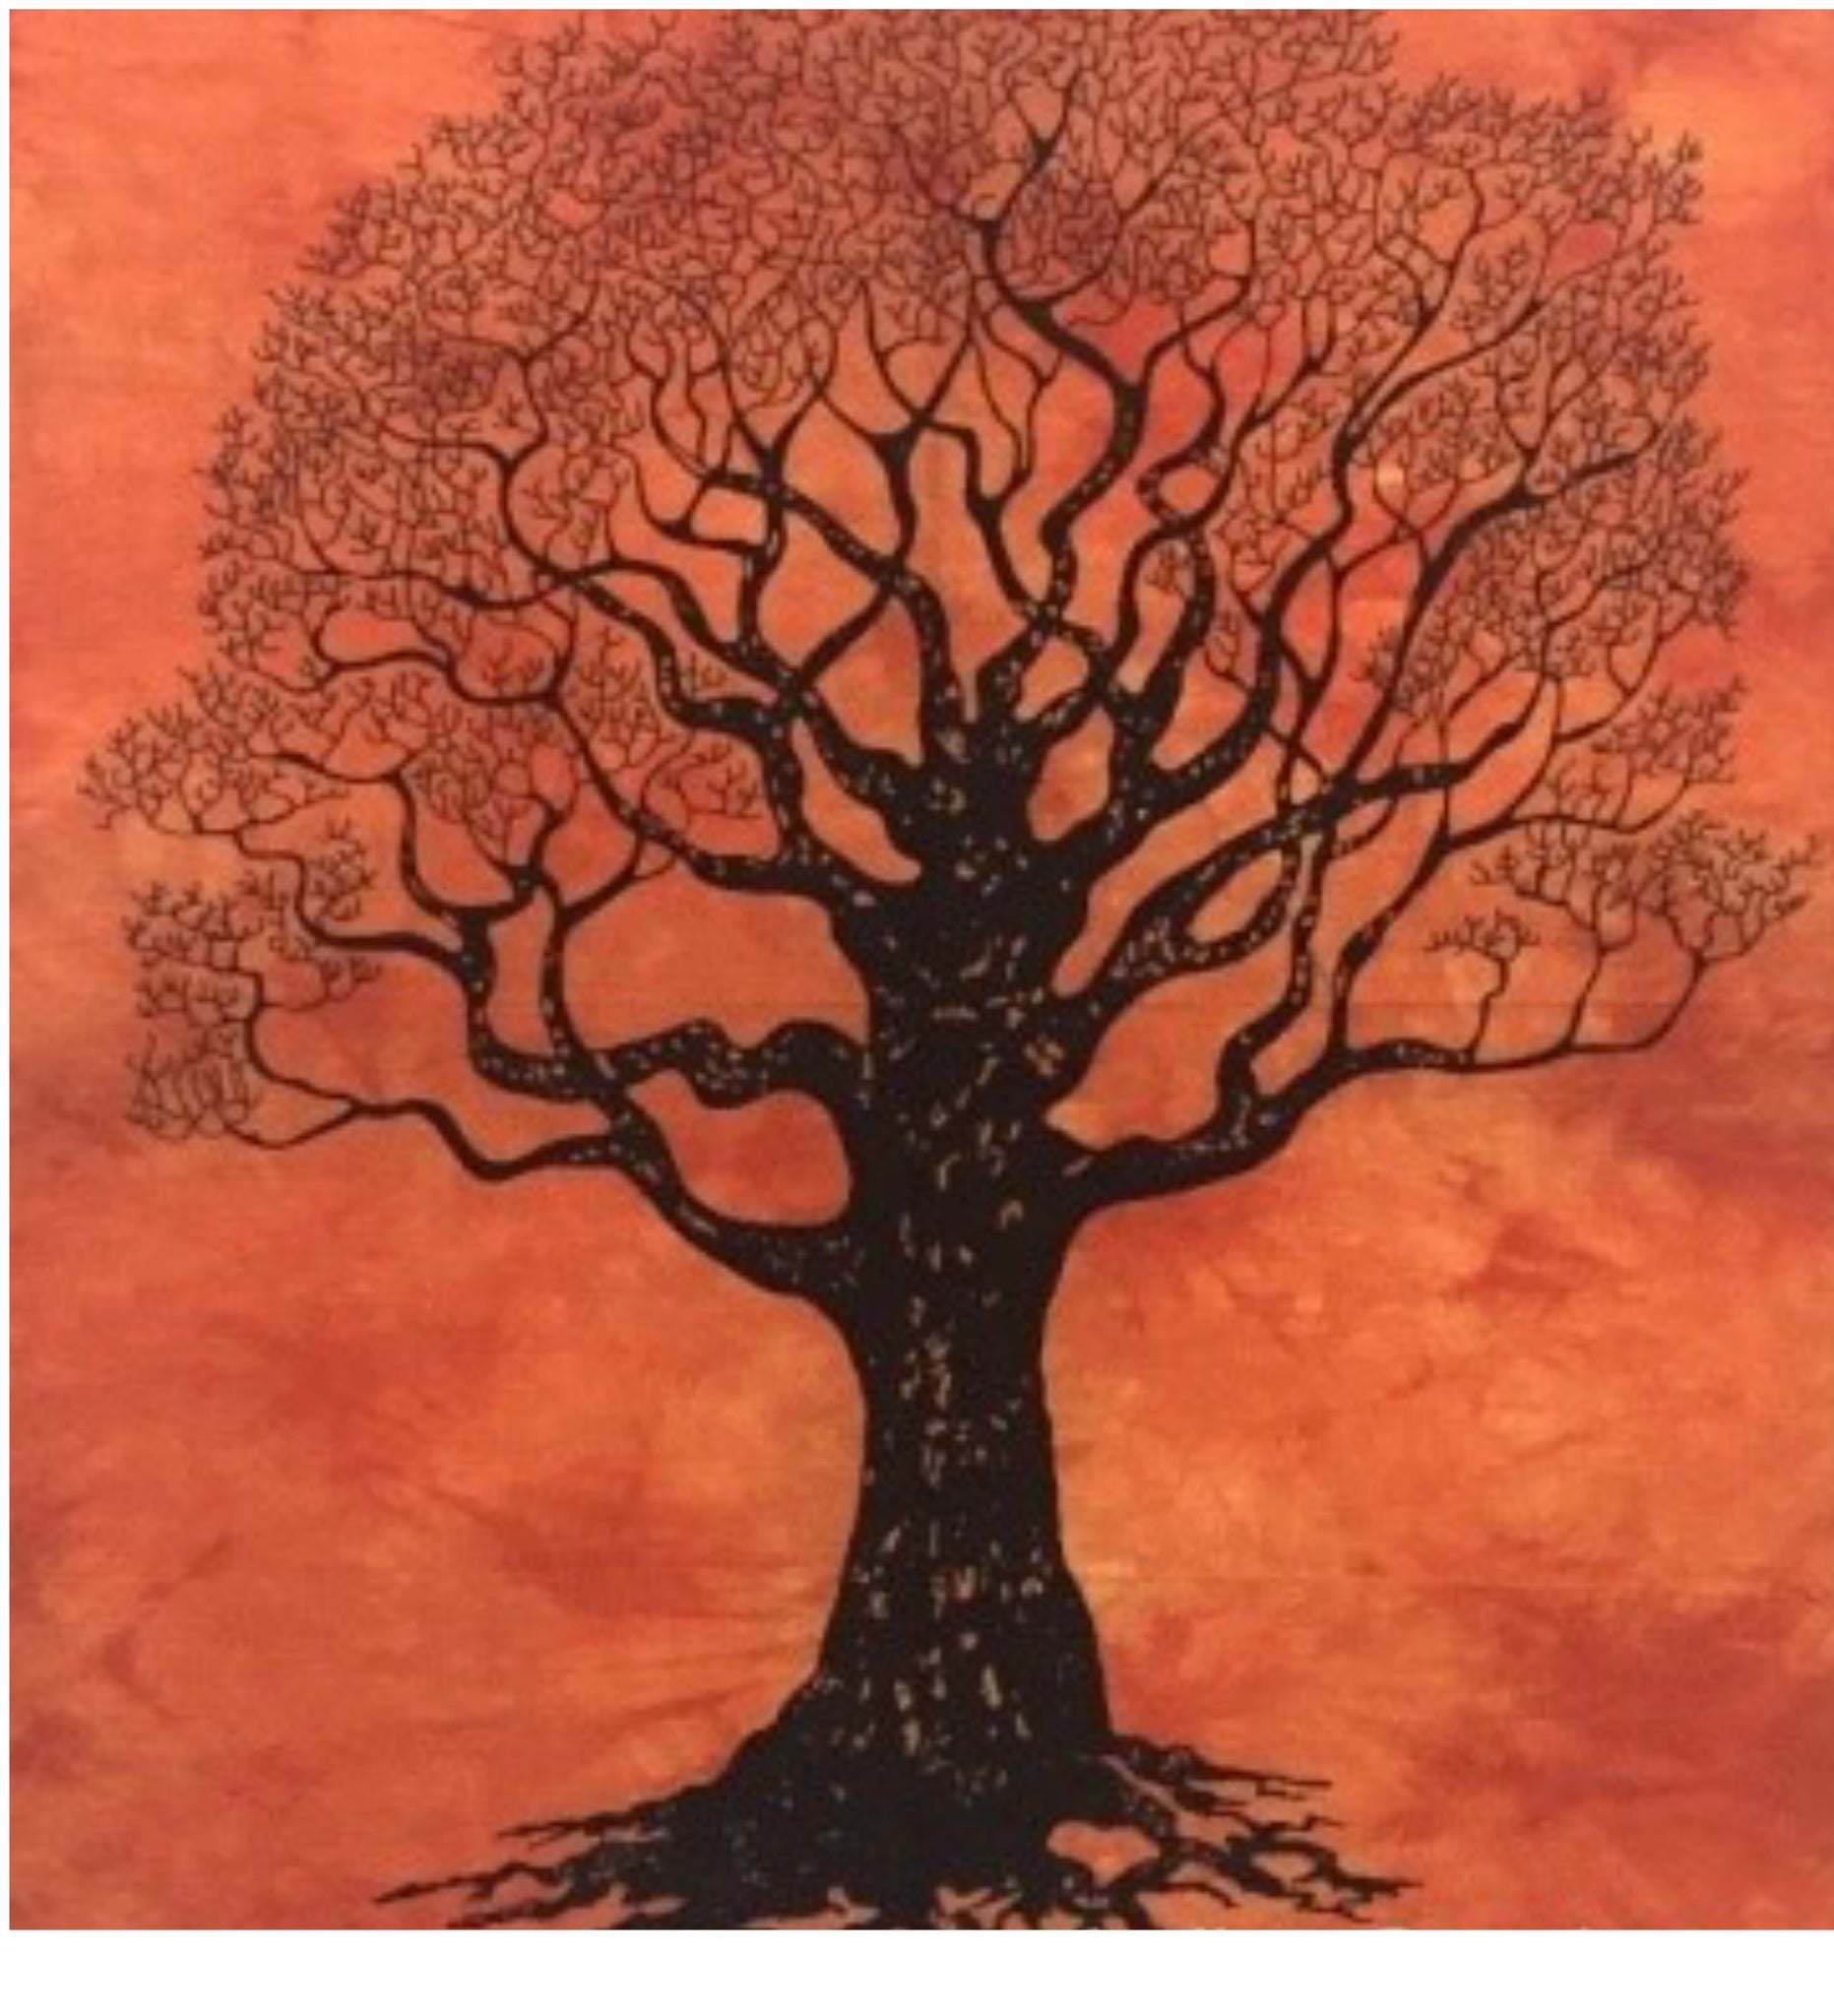 jaan-imports - Orange Tree of Life Poster Tapestry - Khoobsurat Gift Shop - Poster Tapestry